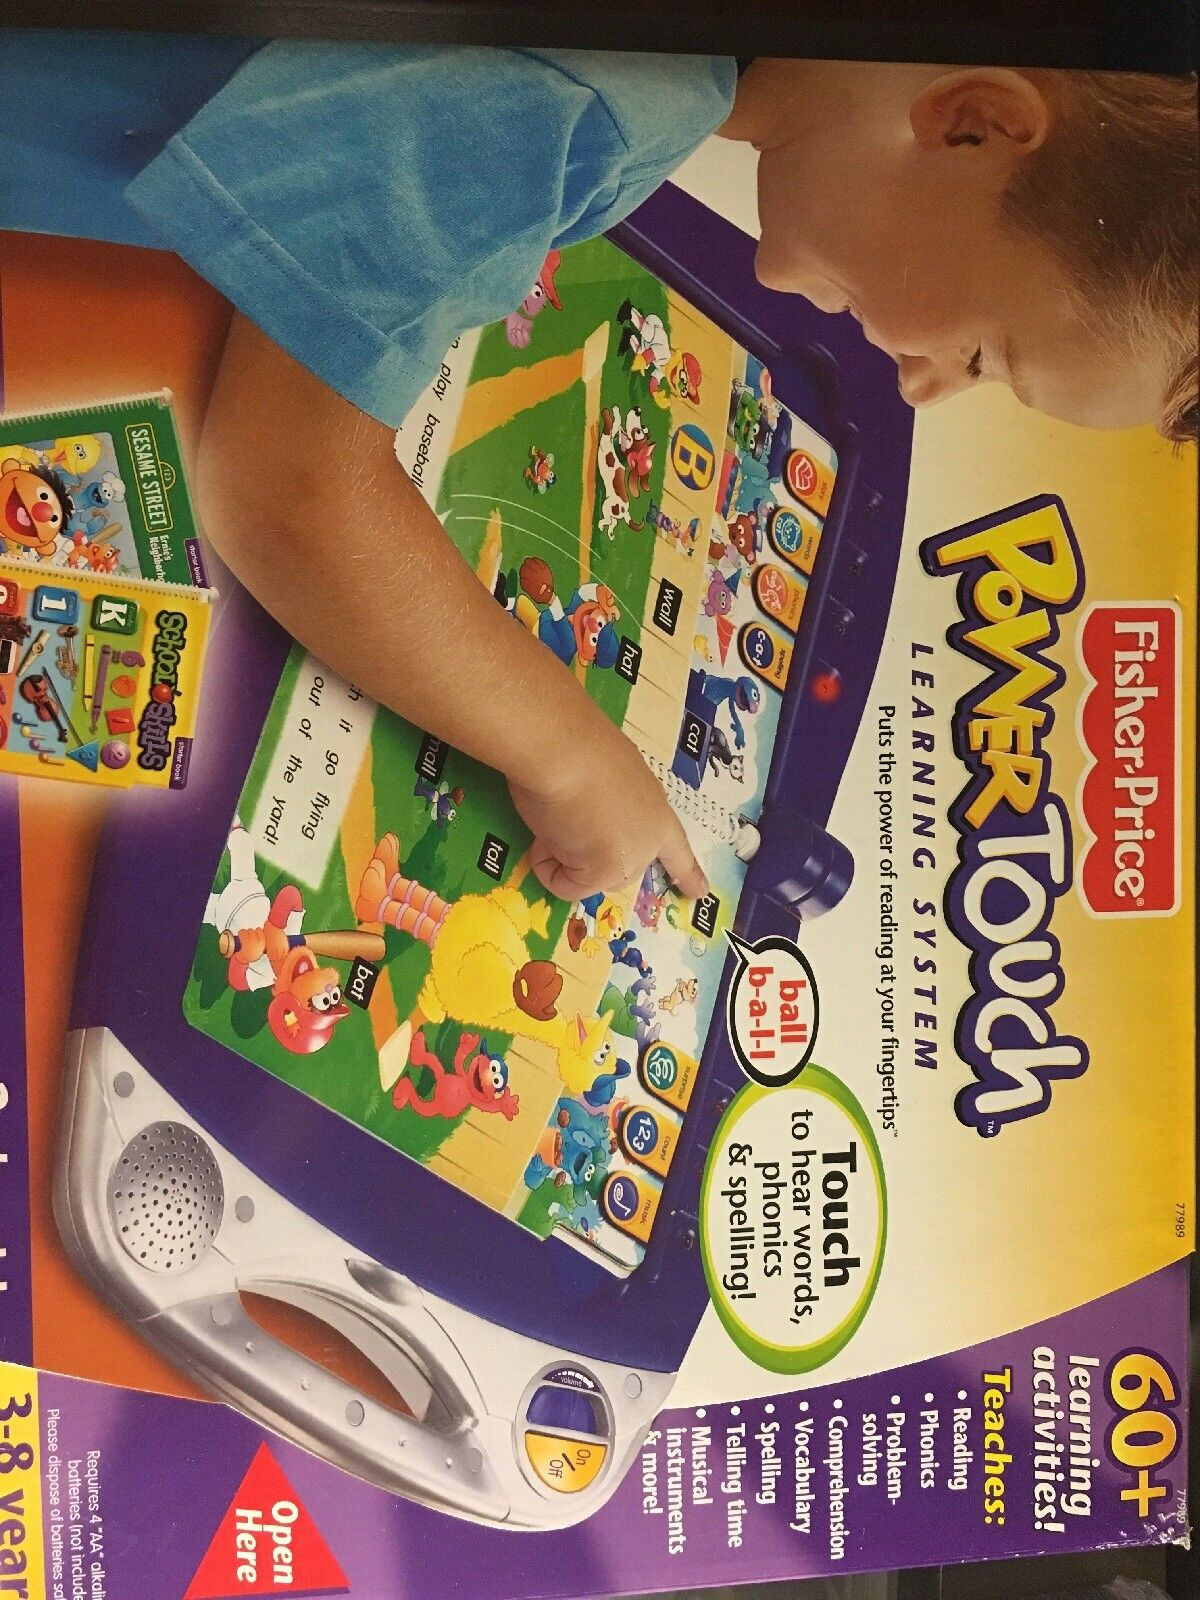 New FISHER PRICE POWER TOUCH LEARNING SYSTEM AGES 3-8 PRE K -2ND GRADE